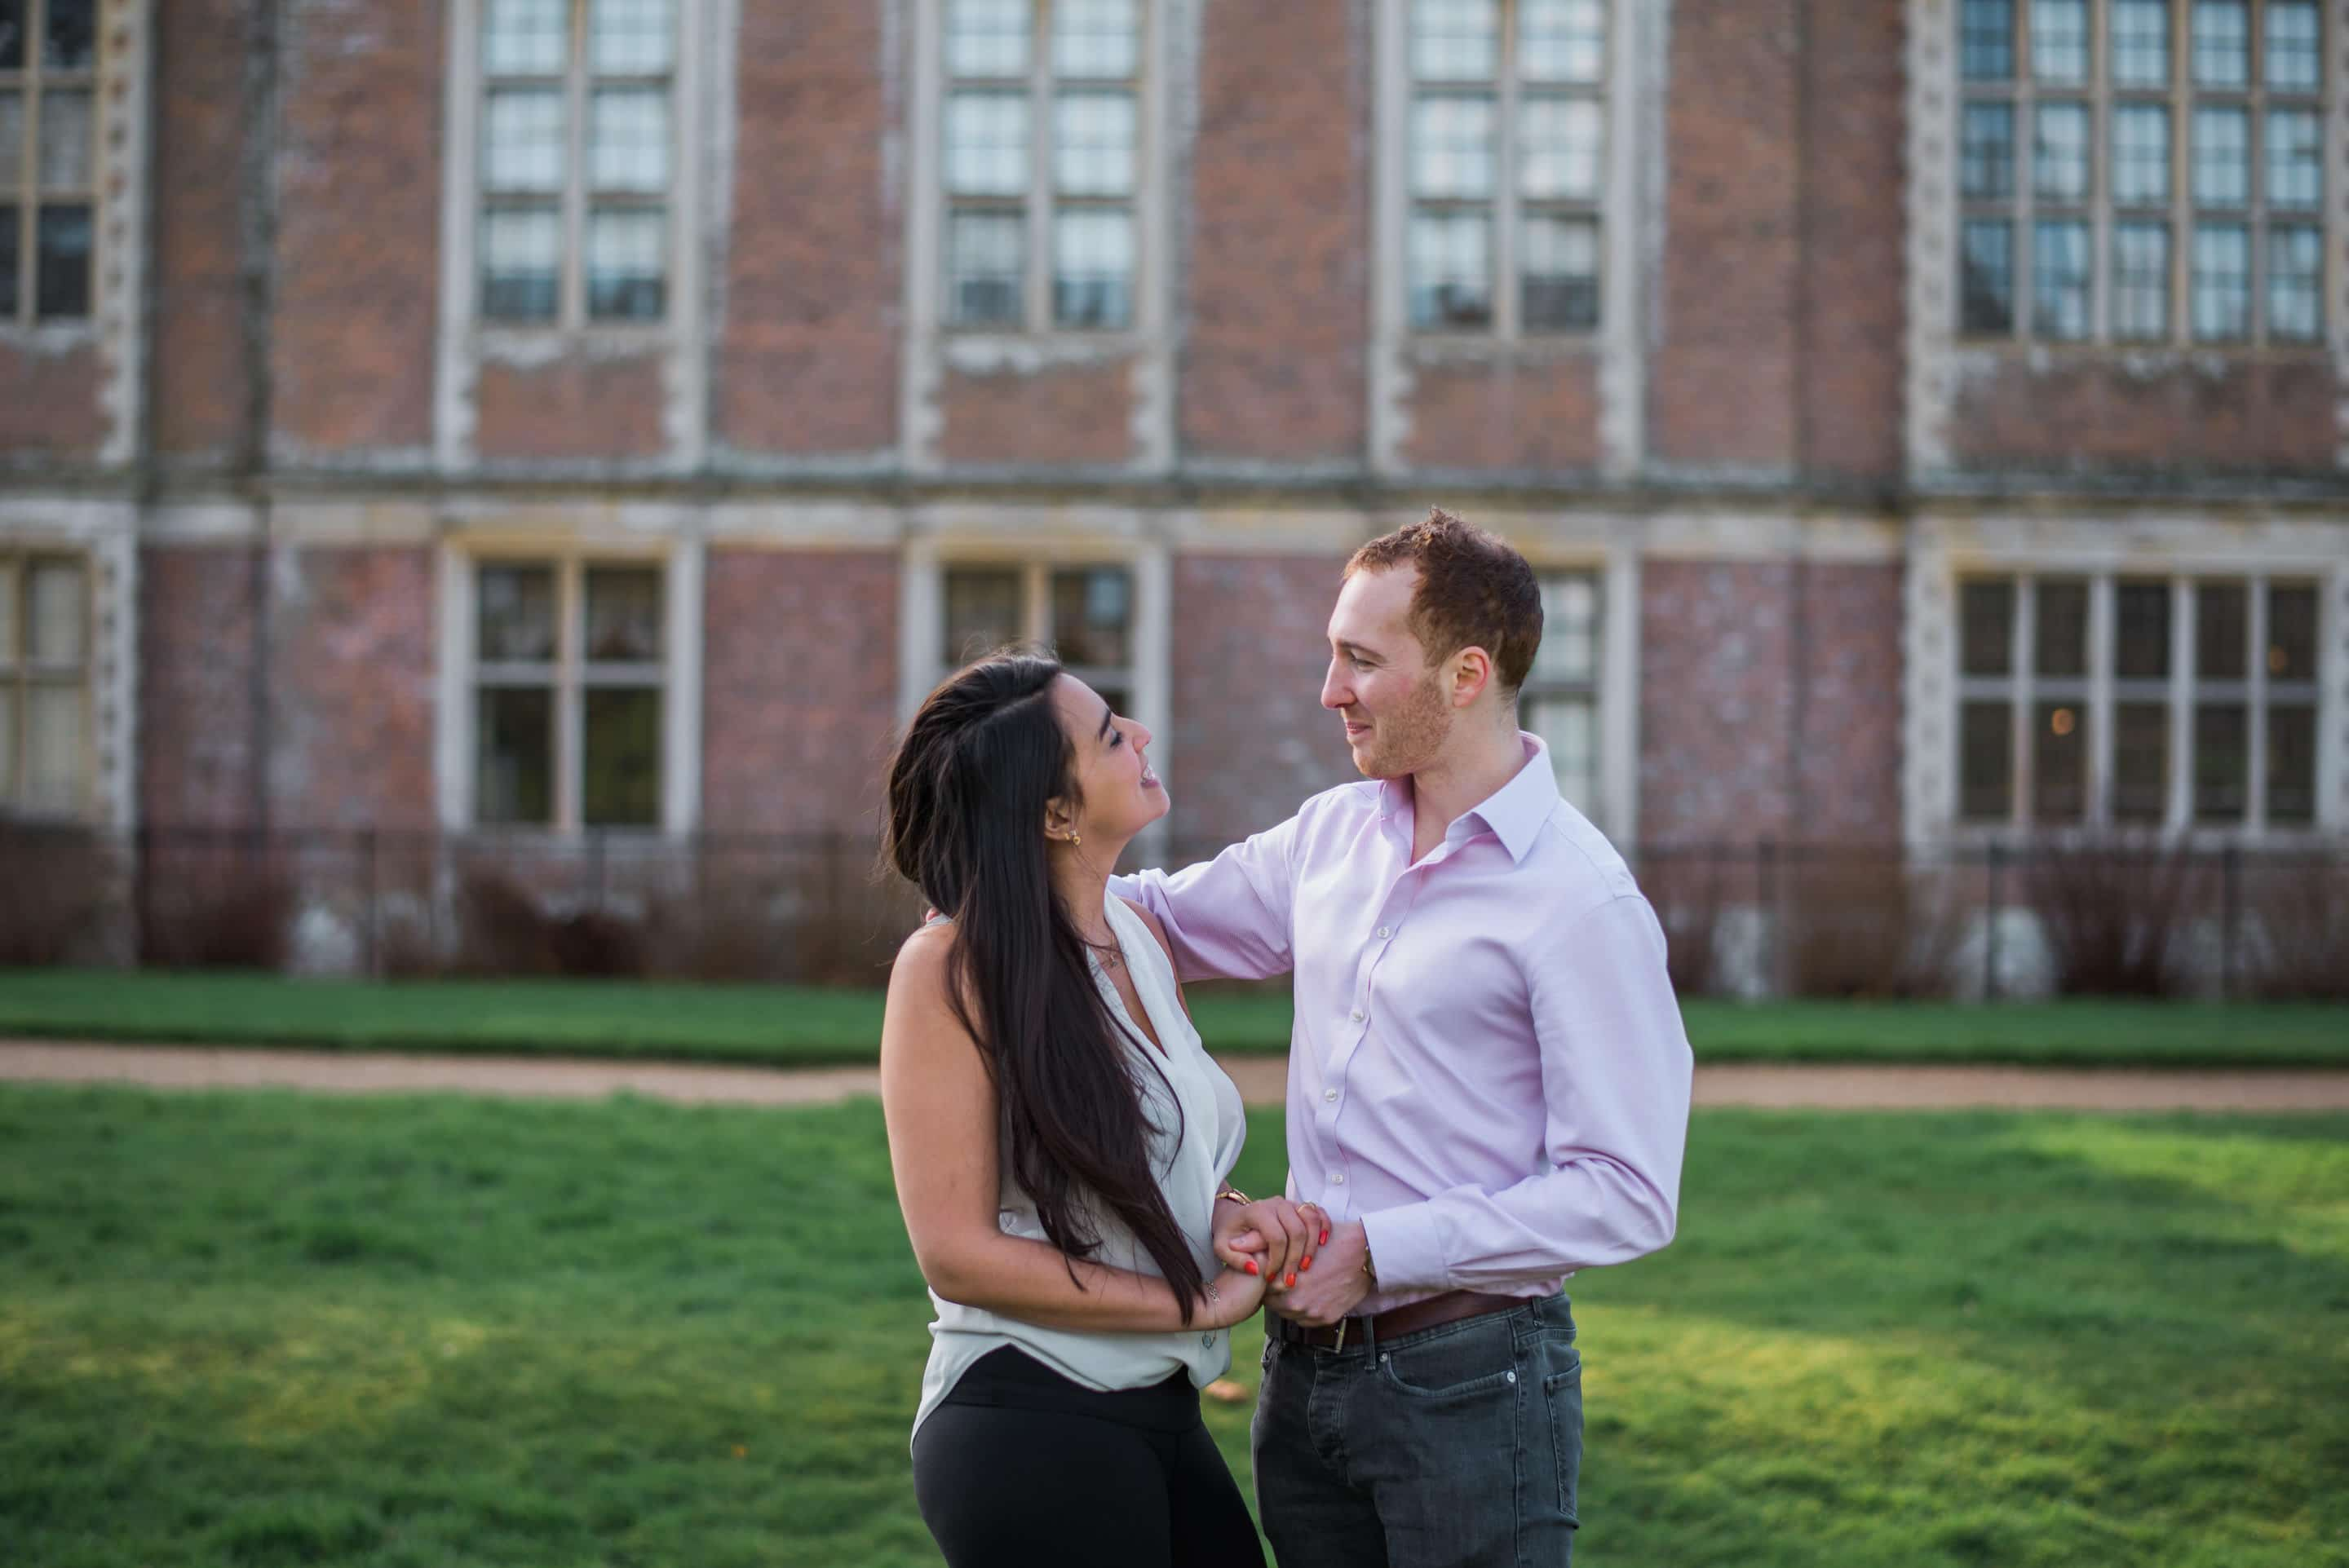 Ben & Katherine - Blickling Hall Proposal 11